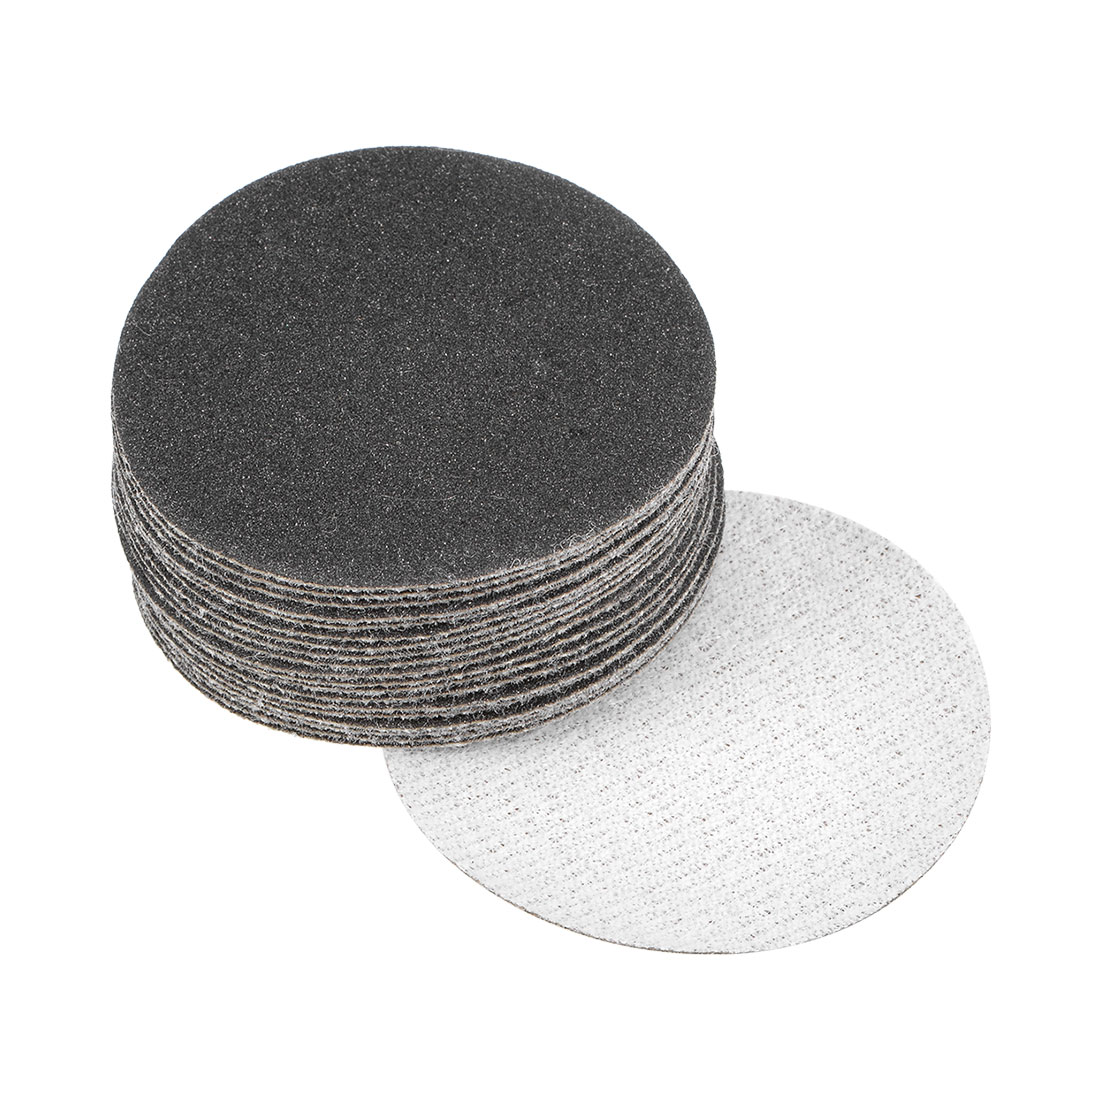 2 inch Wet Dry Discs 180 Grit Hook and Loop Sanding Disc Silicon Carbide 15pcs